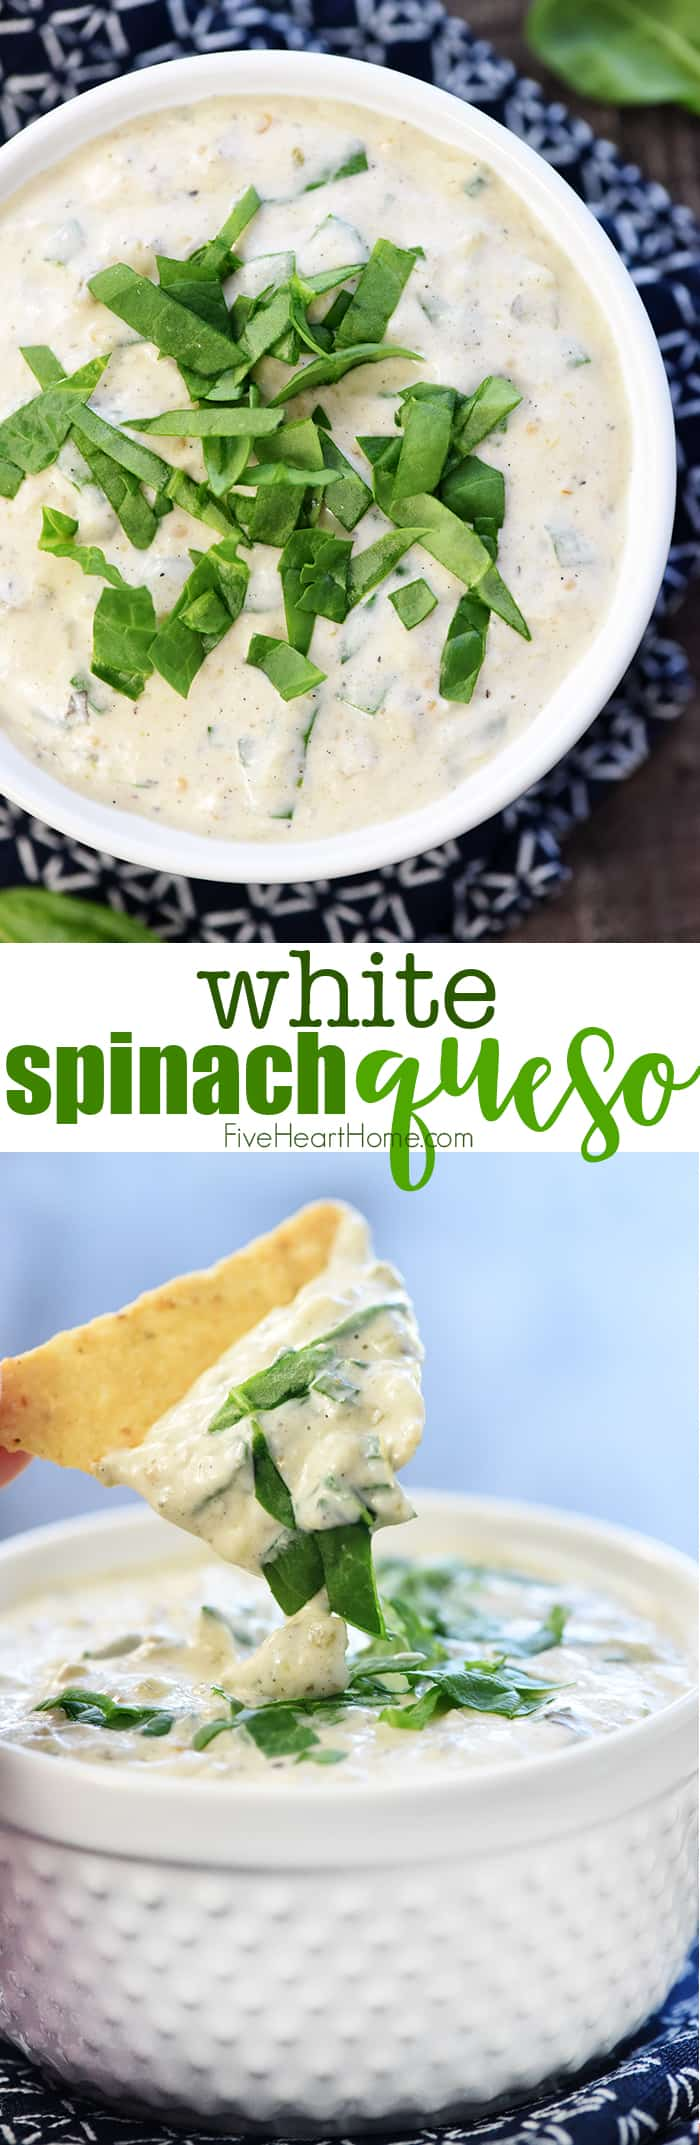 White Spinach Queso ~ a creamy, addictive, effortless dip made with four simple ingredients: cream cheese, Monterey Jack, salsa verde, & fresh chopped spinach! | FiveHeartHome.com